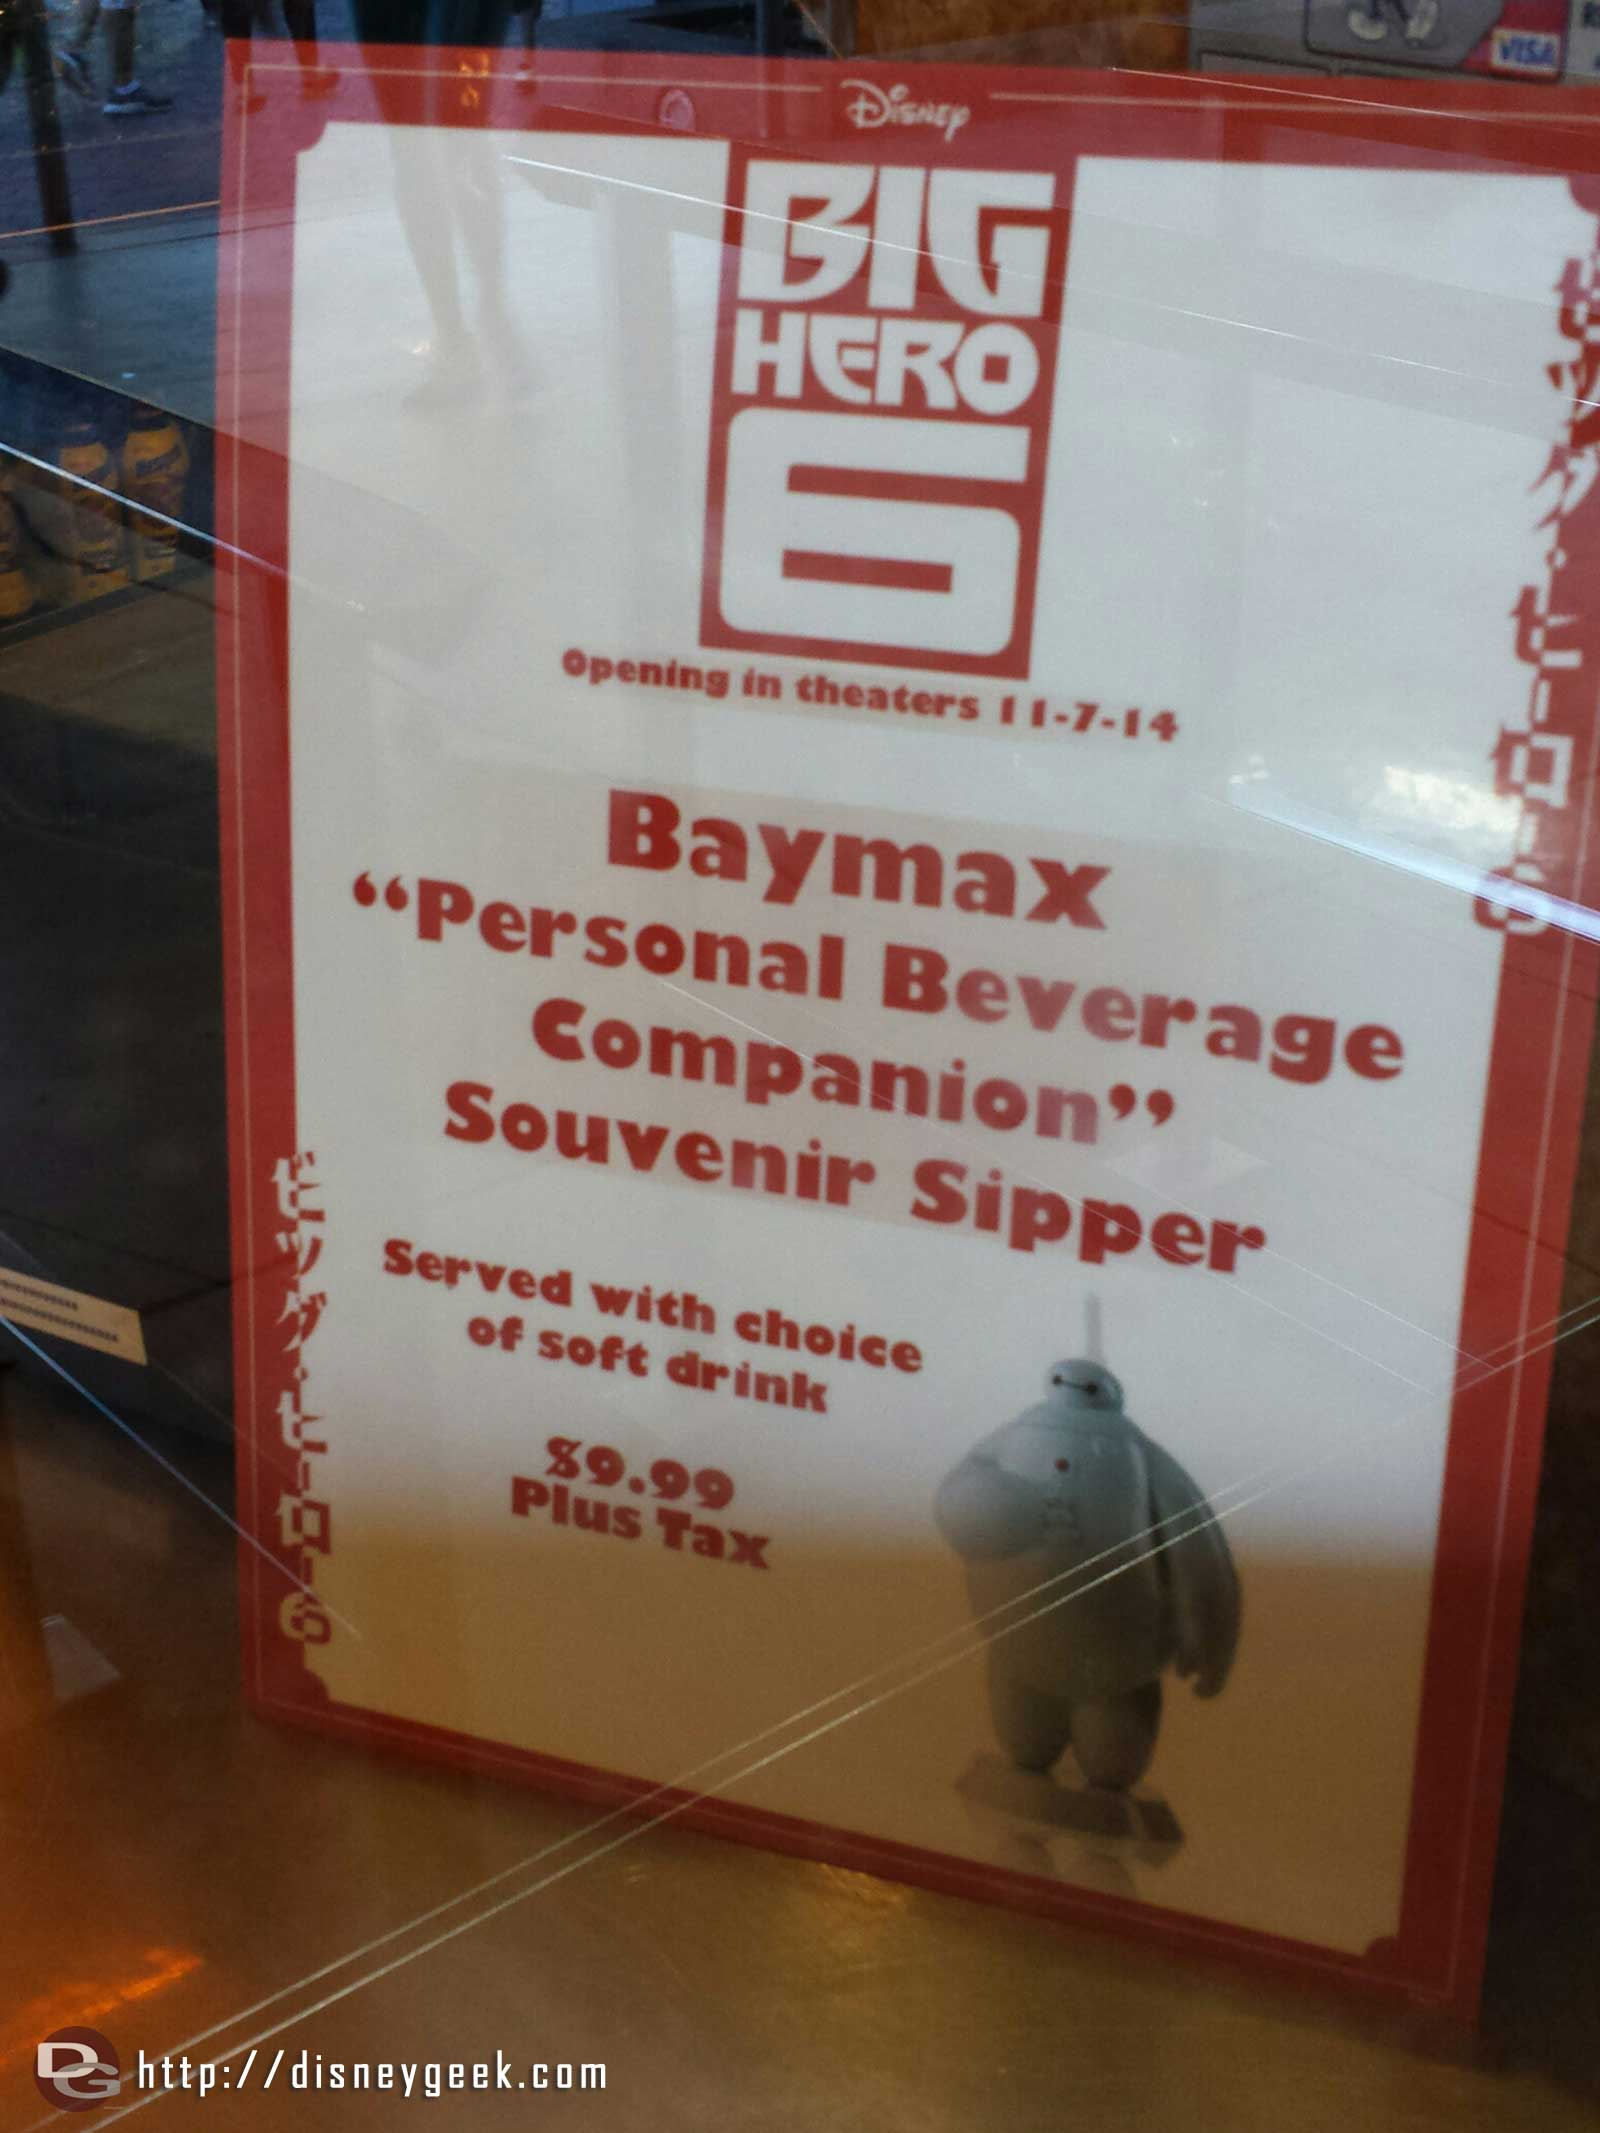 Tomorrowland Terrace has Baymax sippers #BigHero6